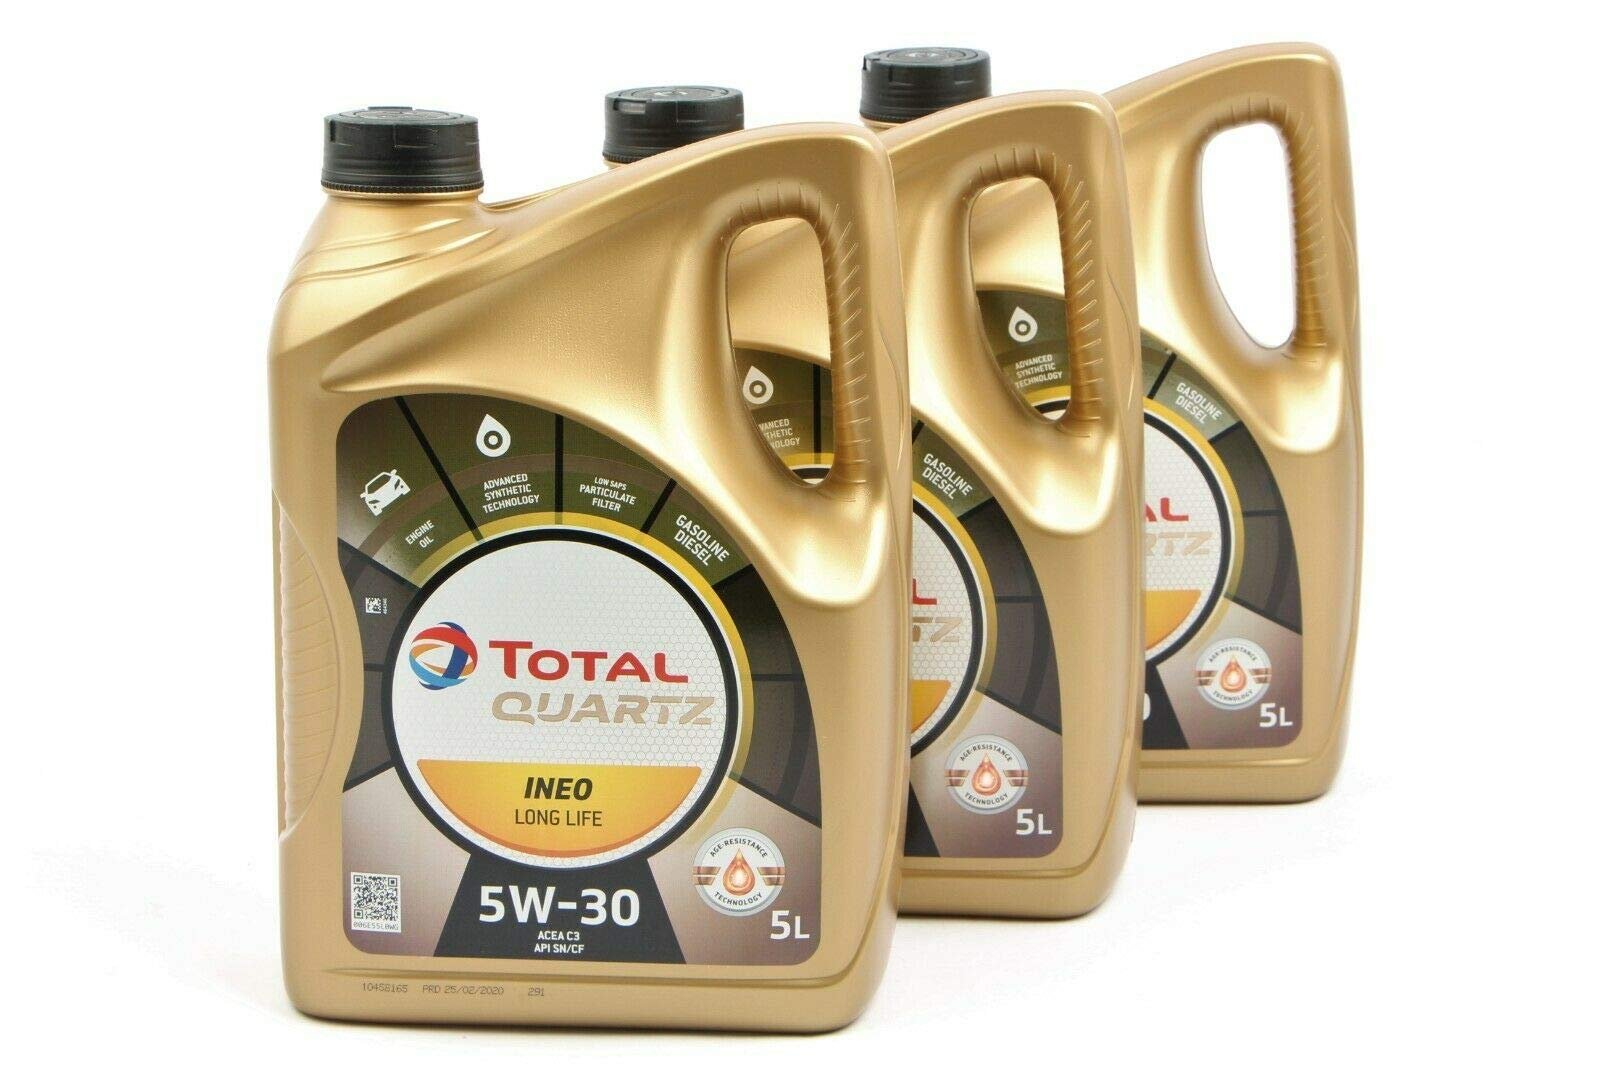 3x MOTORÖL TOTAL QUARTZ INEO LONG LIFE 5W-30 5L von TOTAL_bundle